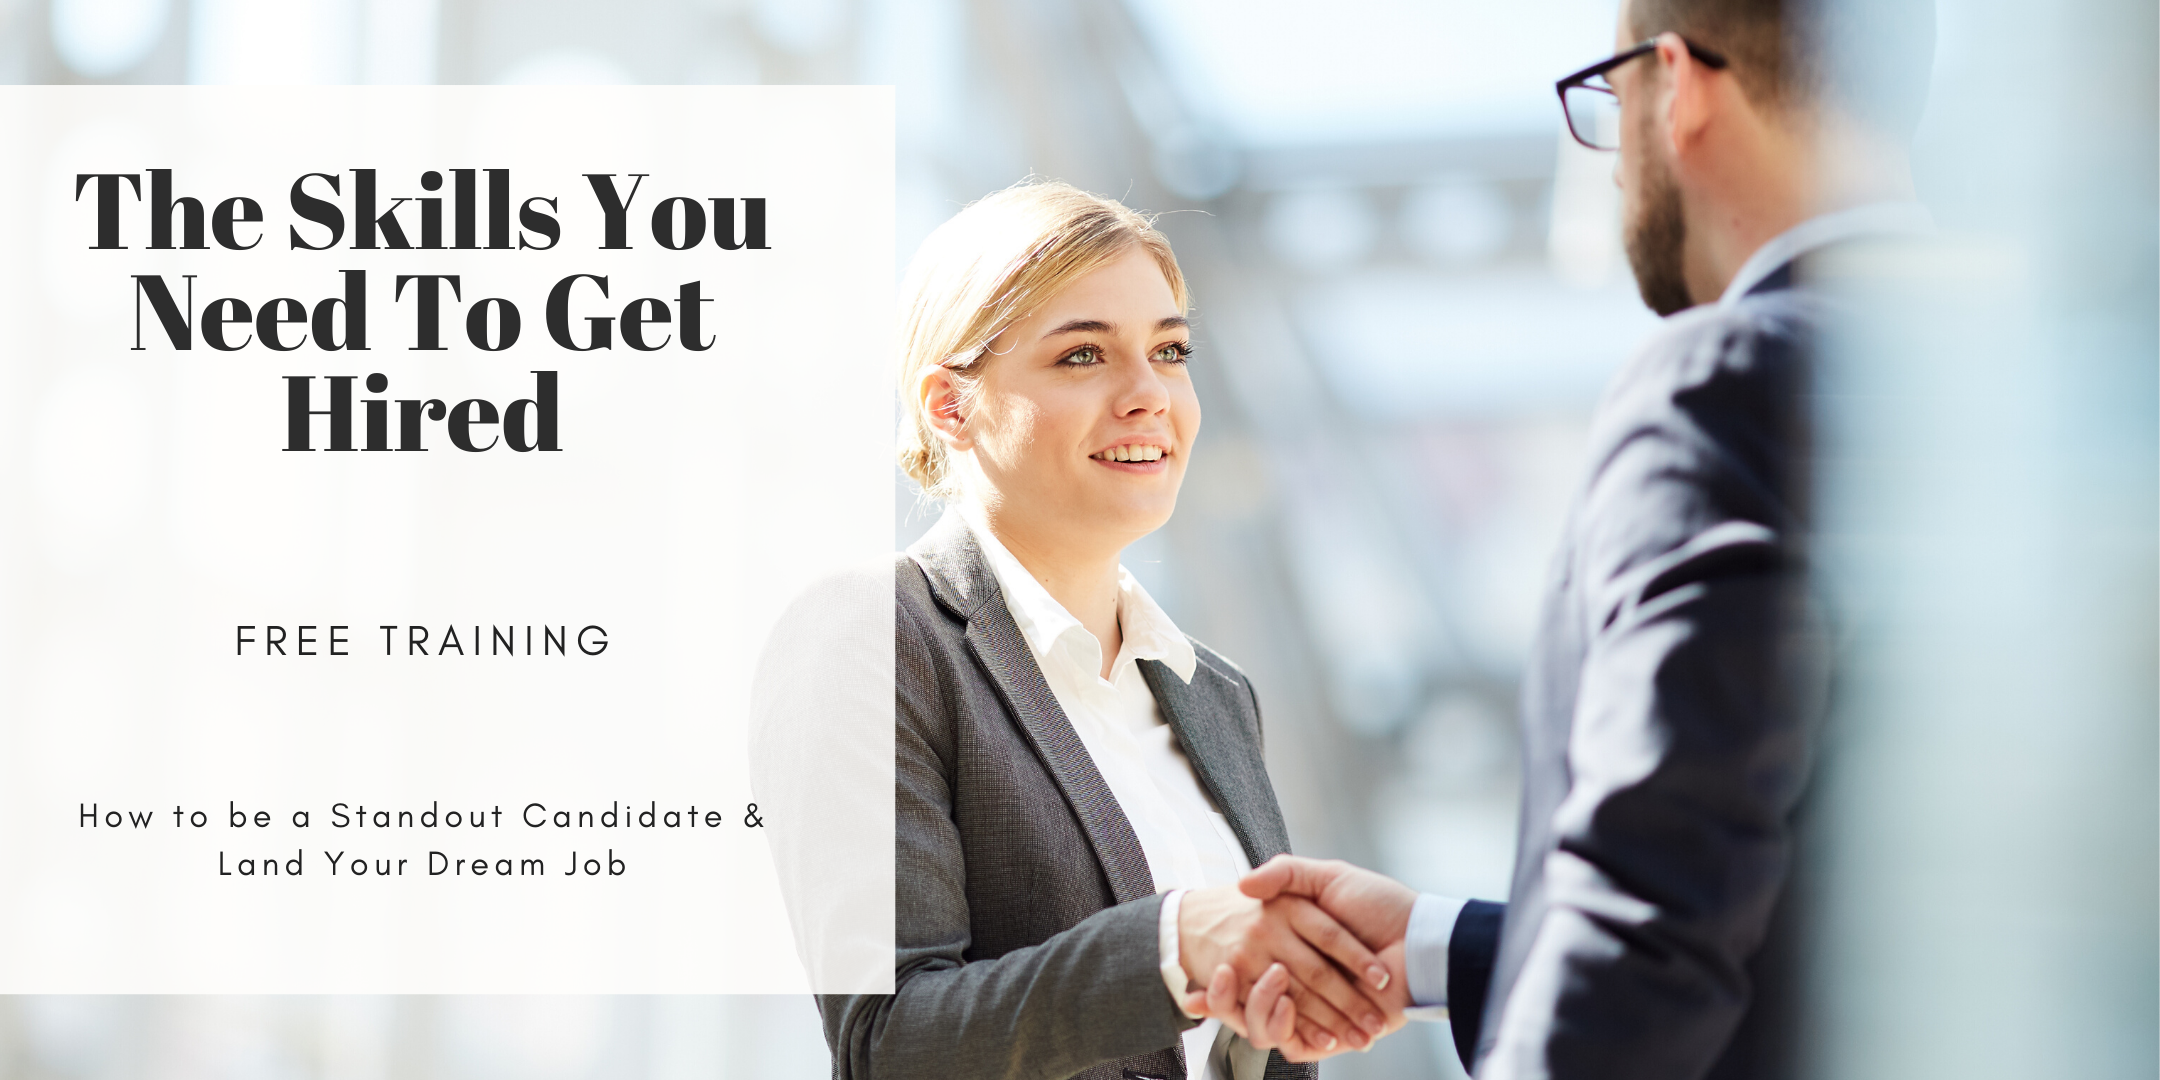 TRAINING: How to Land Your Dream Job (Career Workshop) Victoria